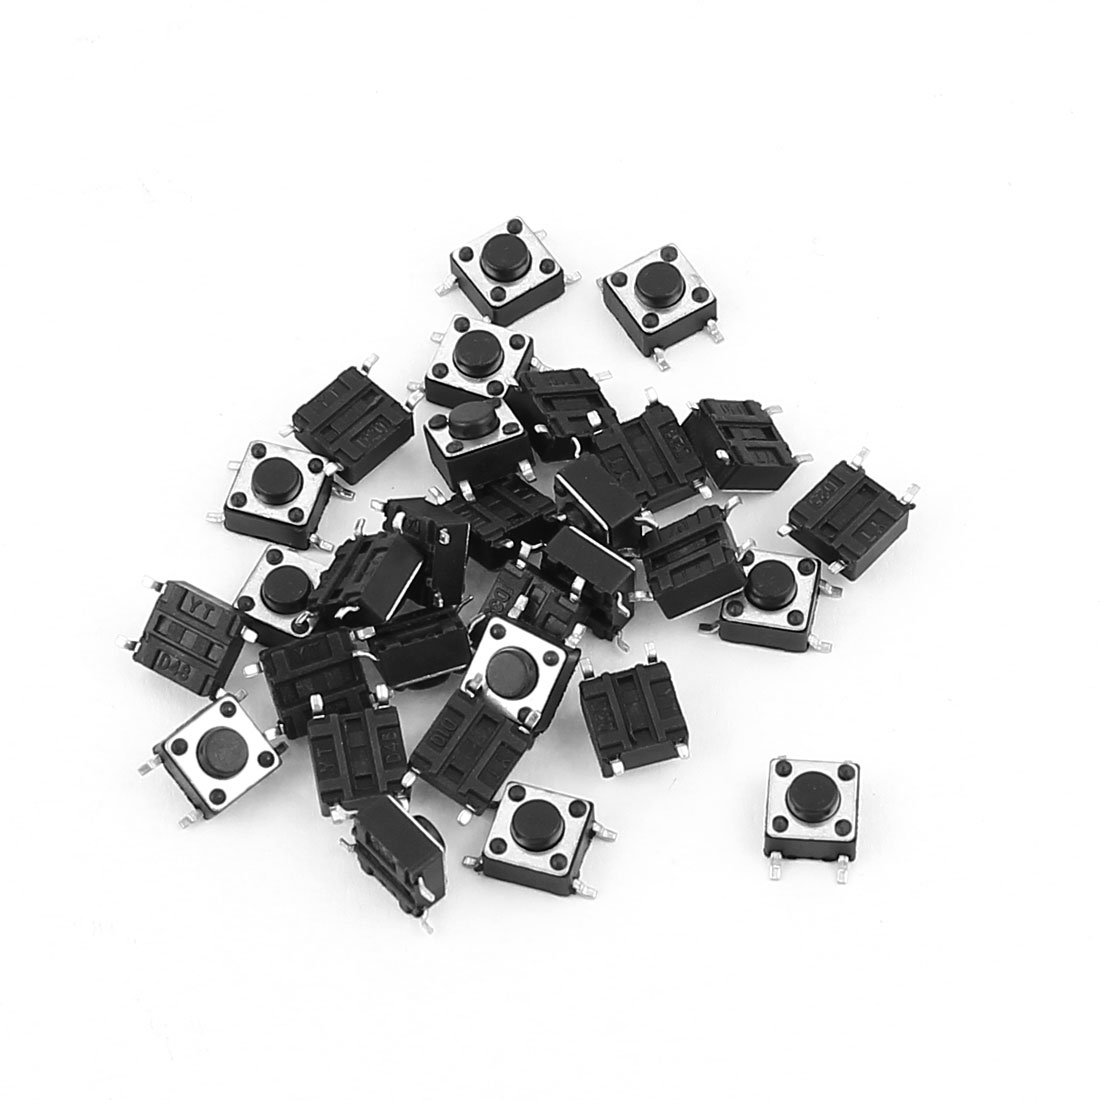 20 x Panel Mounted SMD SMT Momentary 4Pin SPST Tactile Tact Switch 6mmx6mmx4.3mm